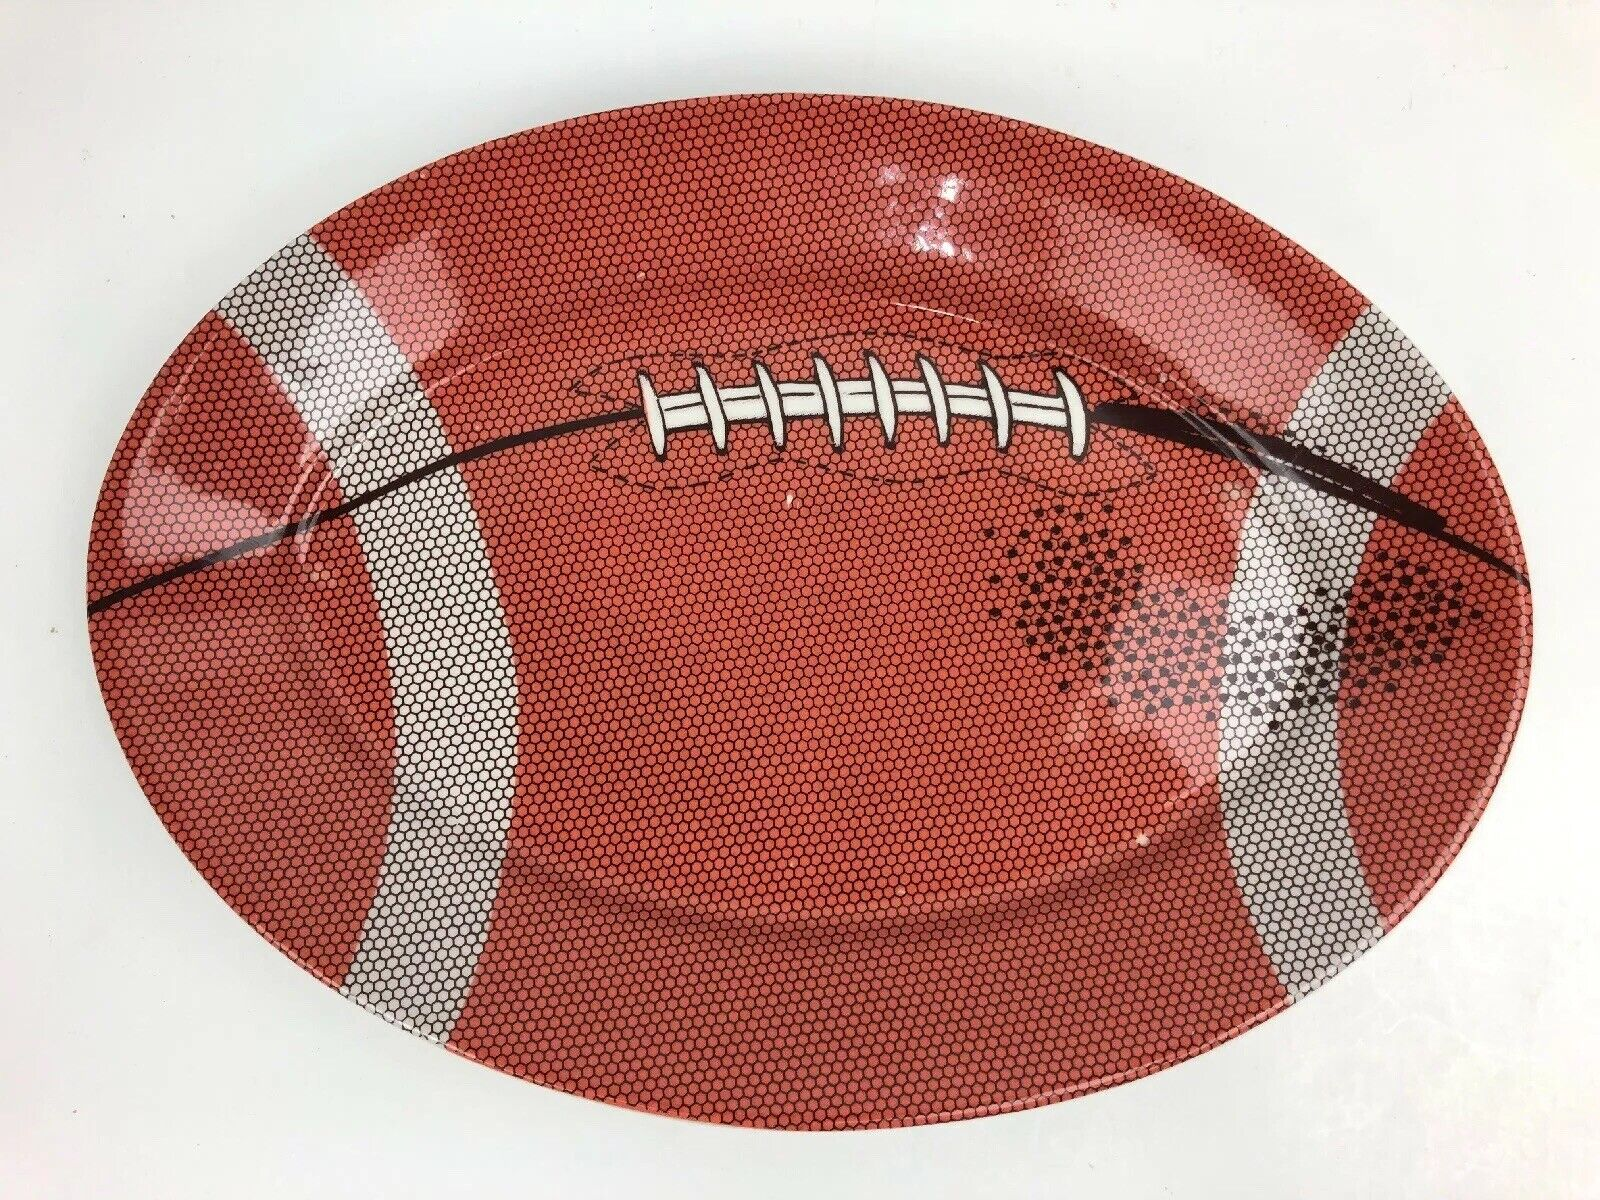 Rare Homer Laughlin Football Sports 1941 Serving Plate Party Platter 12 5 Hlc For Sale Online